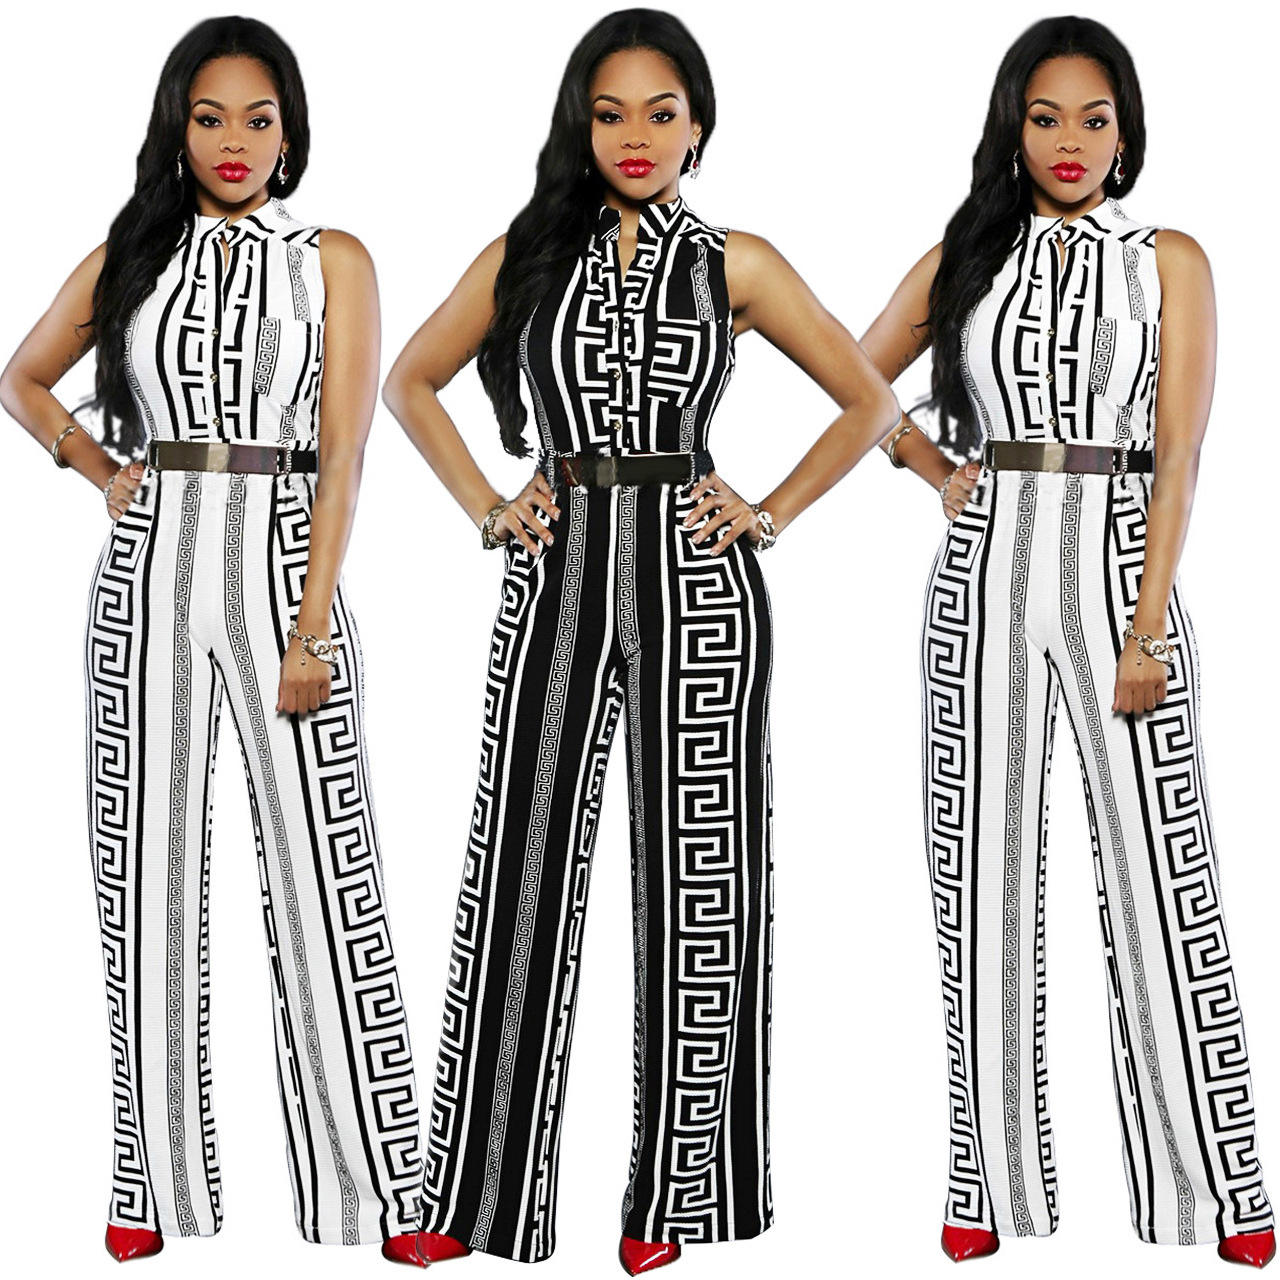 Fashion Women Printed   Jumpsuits   Sleeveless Sexy Slim Casual Clothes Stand Collar Elegant Ladies Pants   Jumpsuit   S M L XL XXL